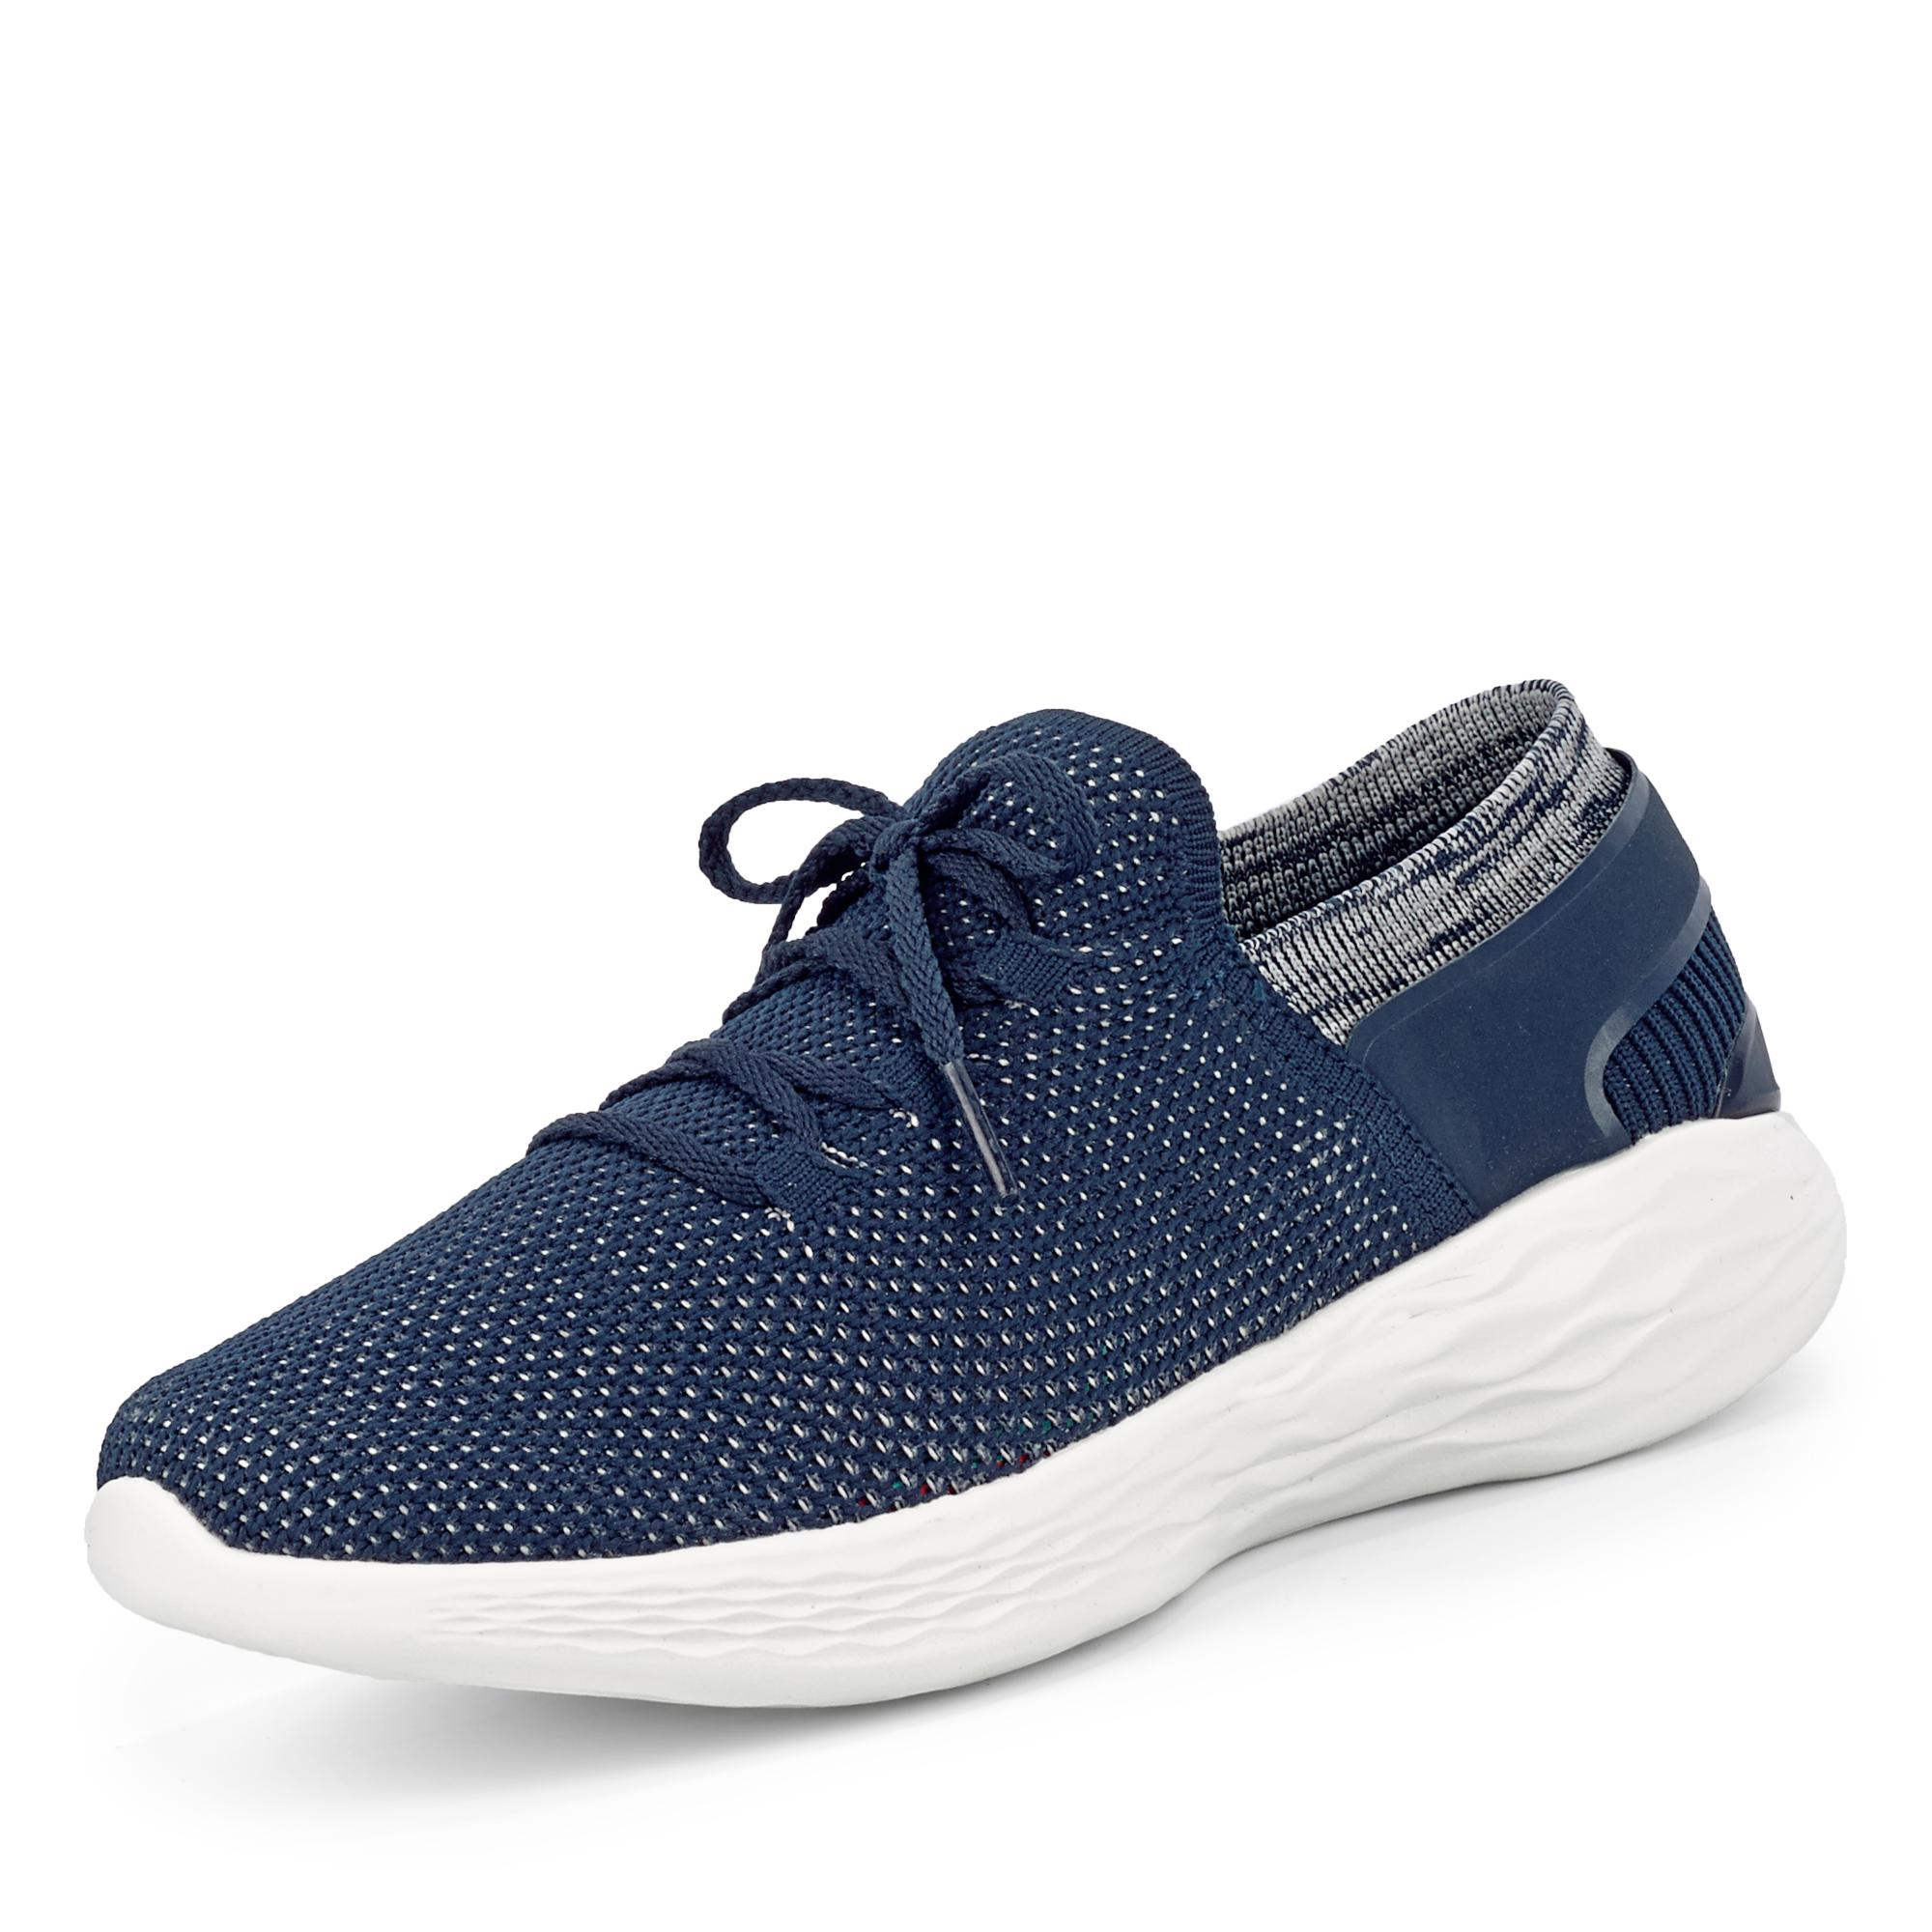 Skechers You Spirit Sneaker - blau | Markenschuhe